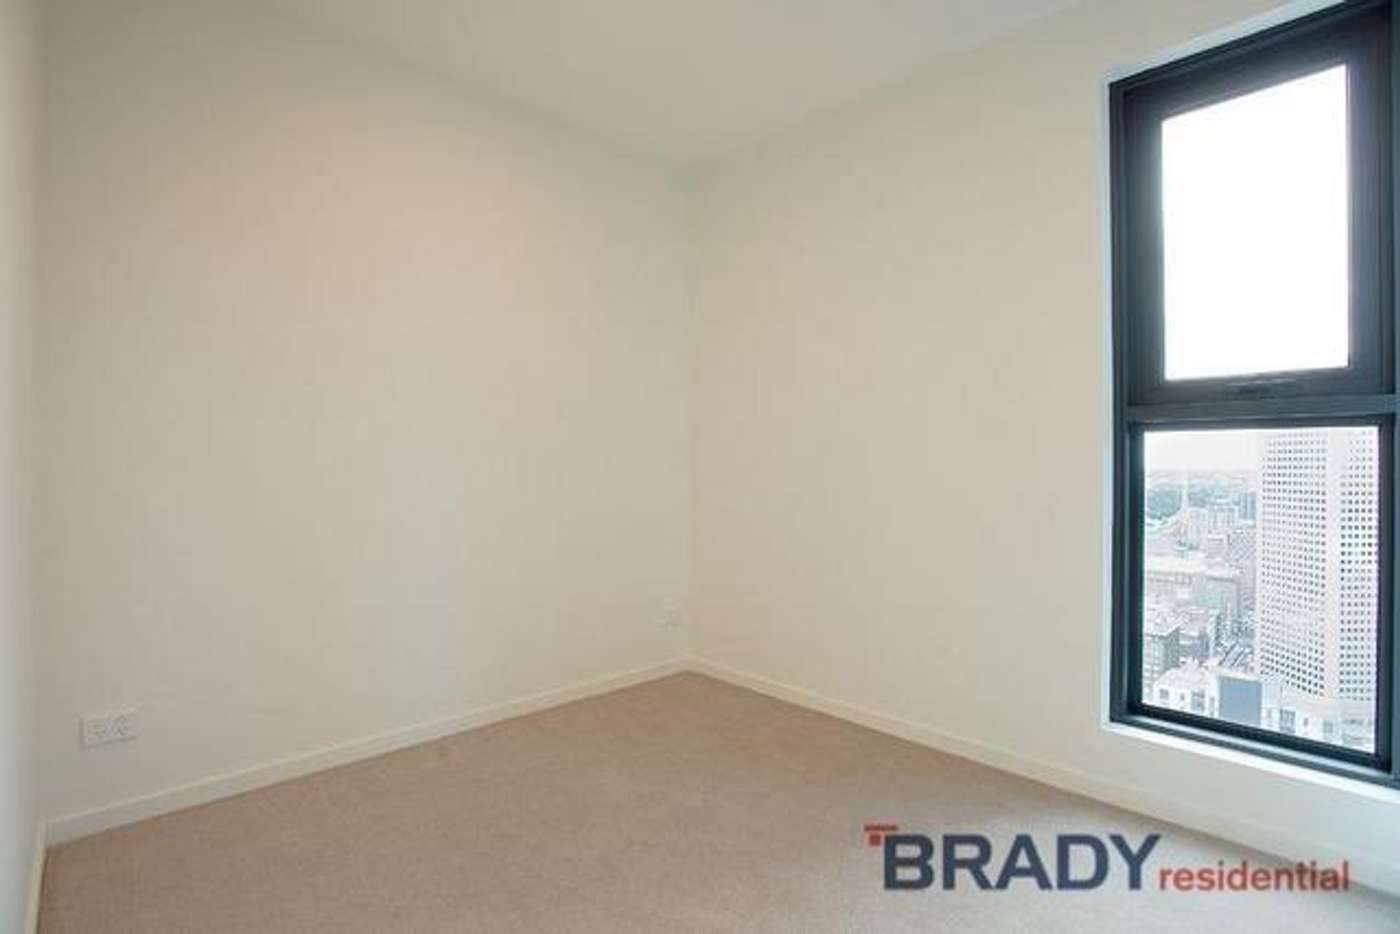 Sixth view of Homely apartment listing, 3501/8 Sutherland Street, Melbourne VIC 3000